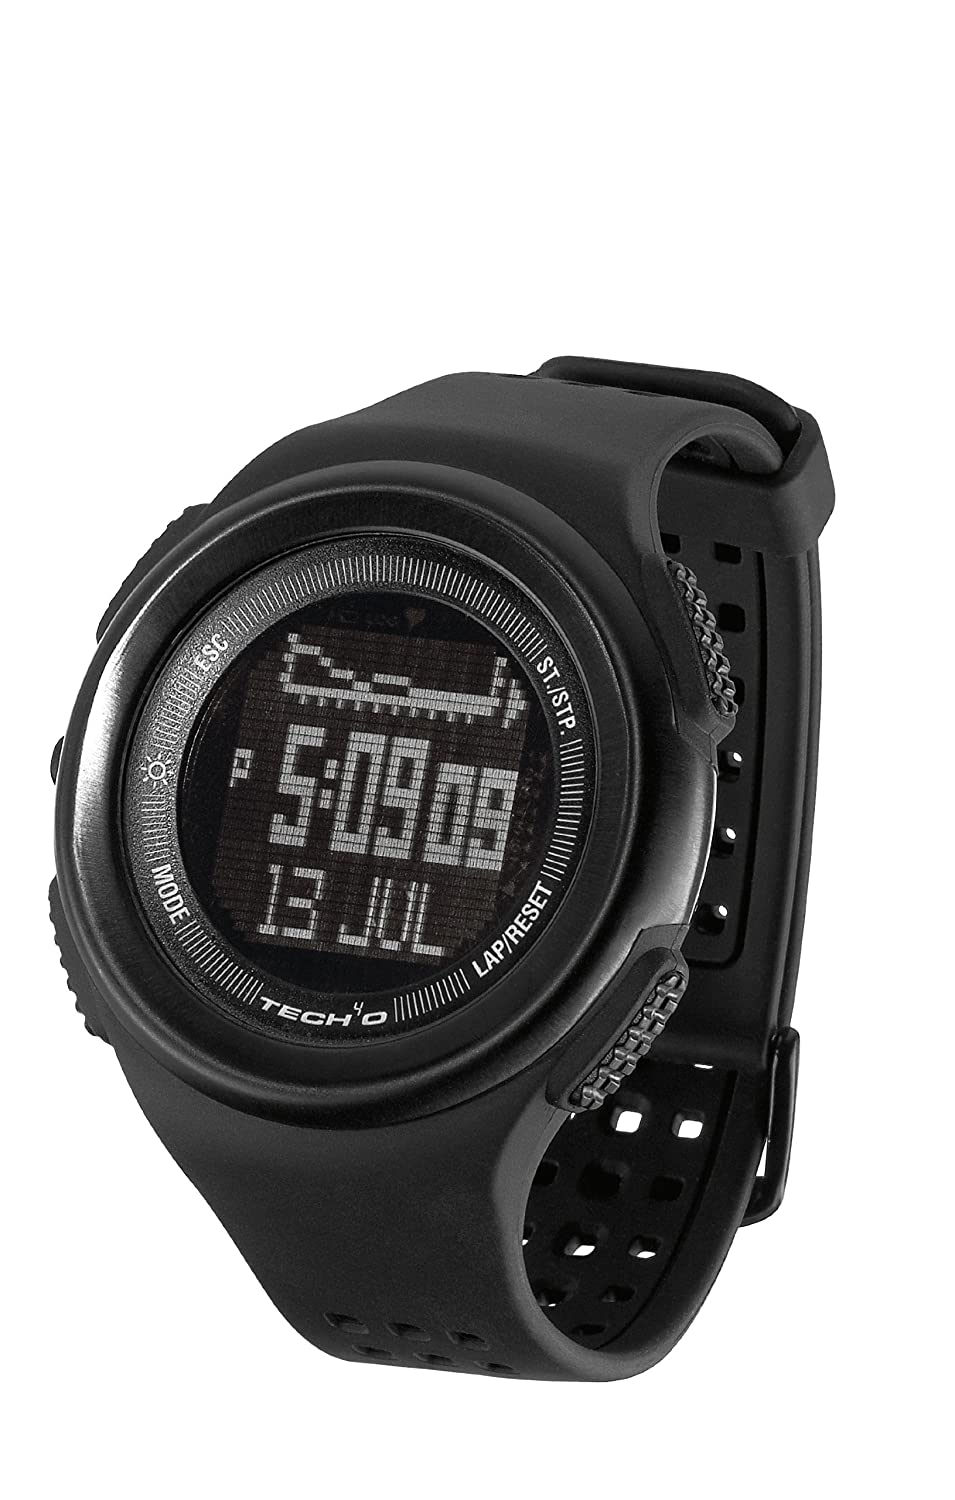 Tech4O - Reloj de pulsera, color negro: Amazon.es: Deportes y aire libre